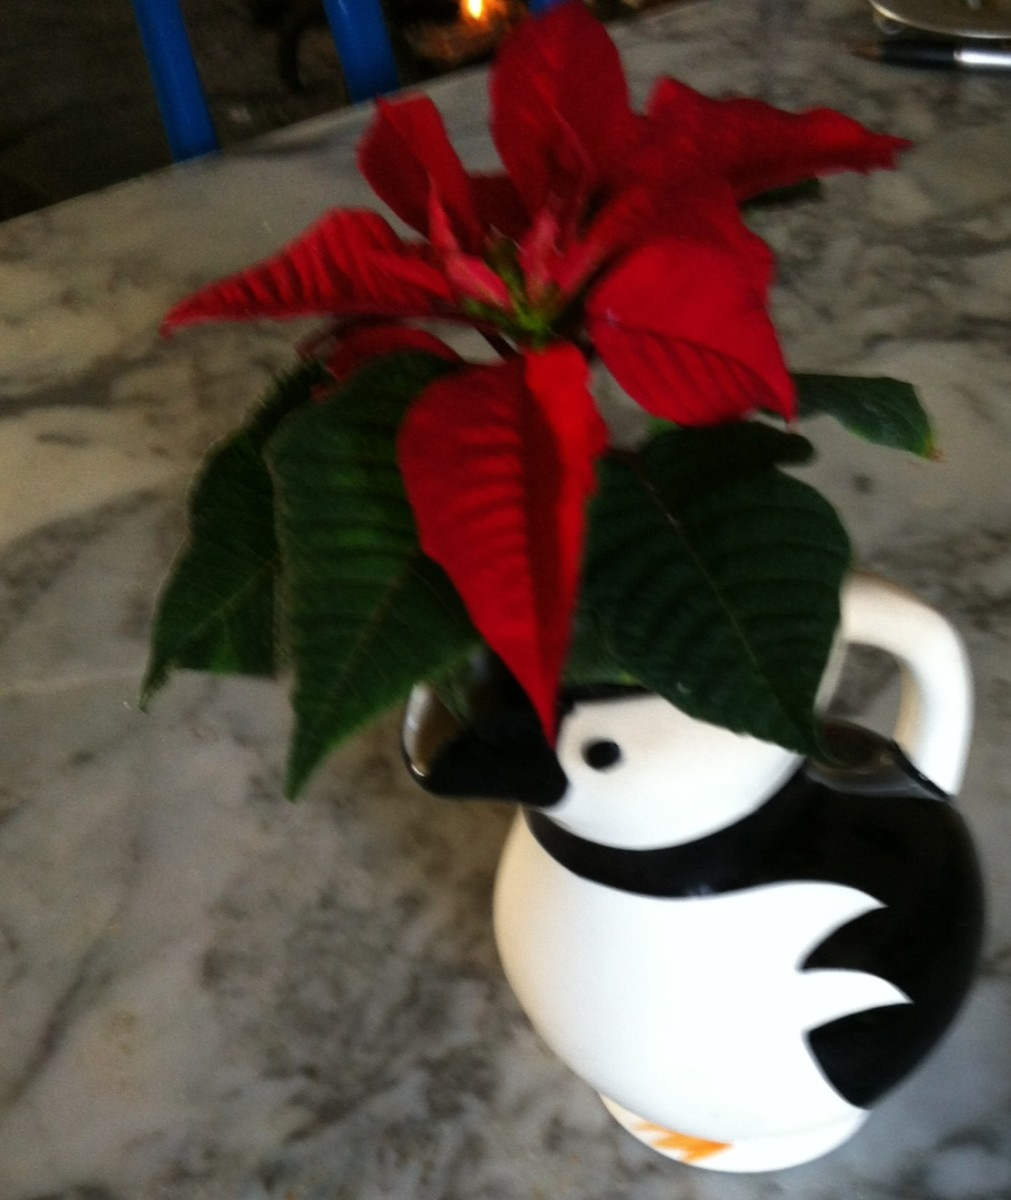 A penguin jug with a very small pot of these red Christmas flowers in it.